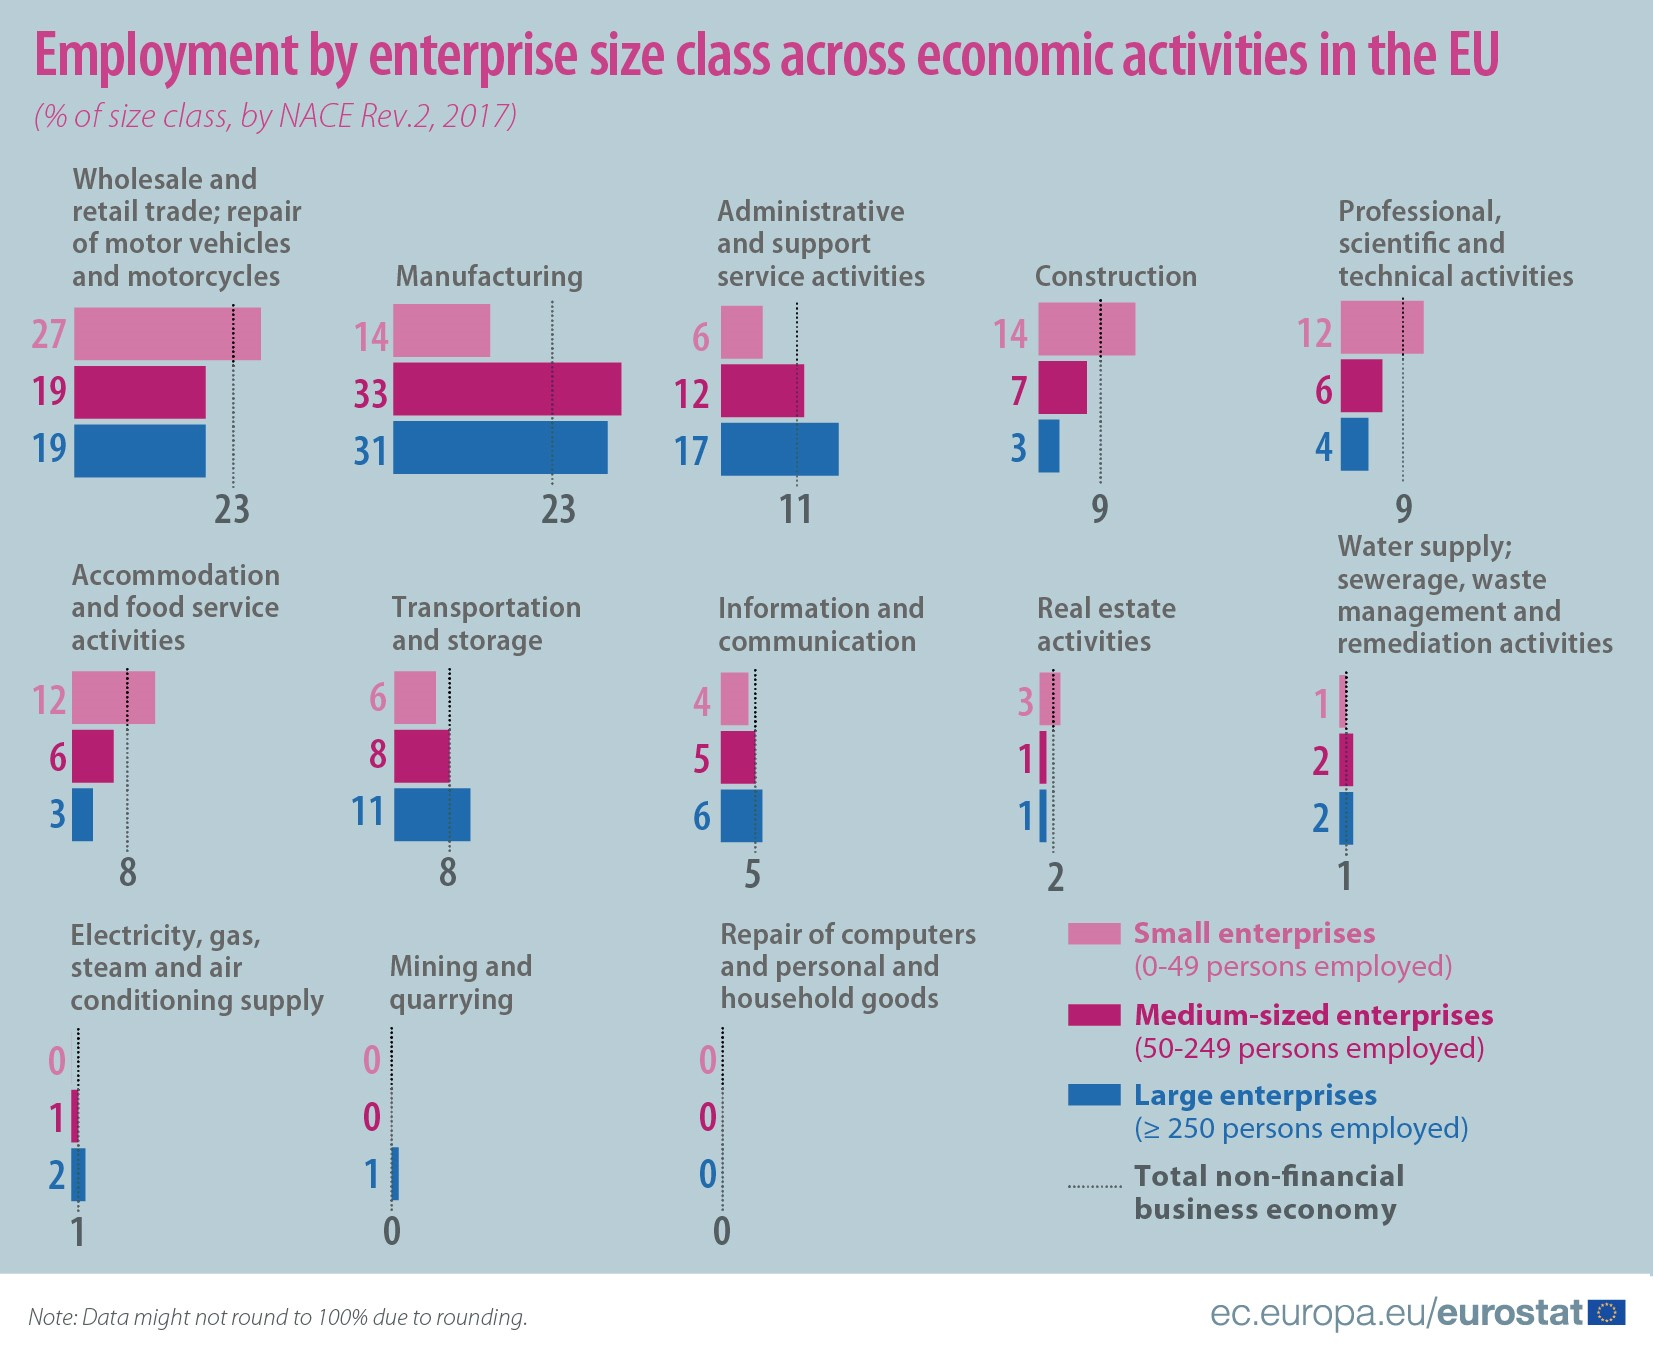 Non-financial business economy by size class and economic activity, 2017